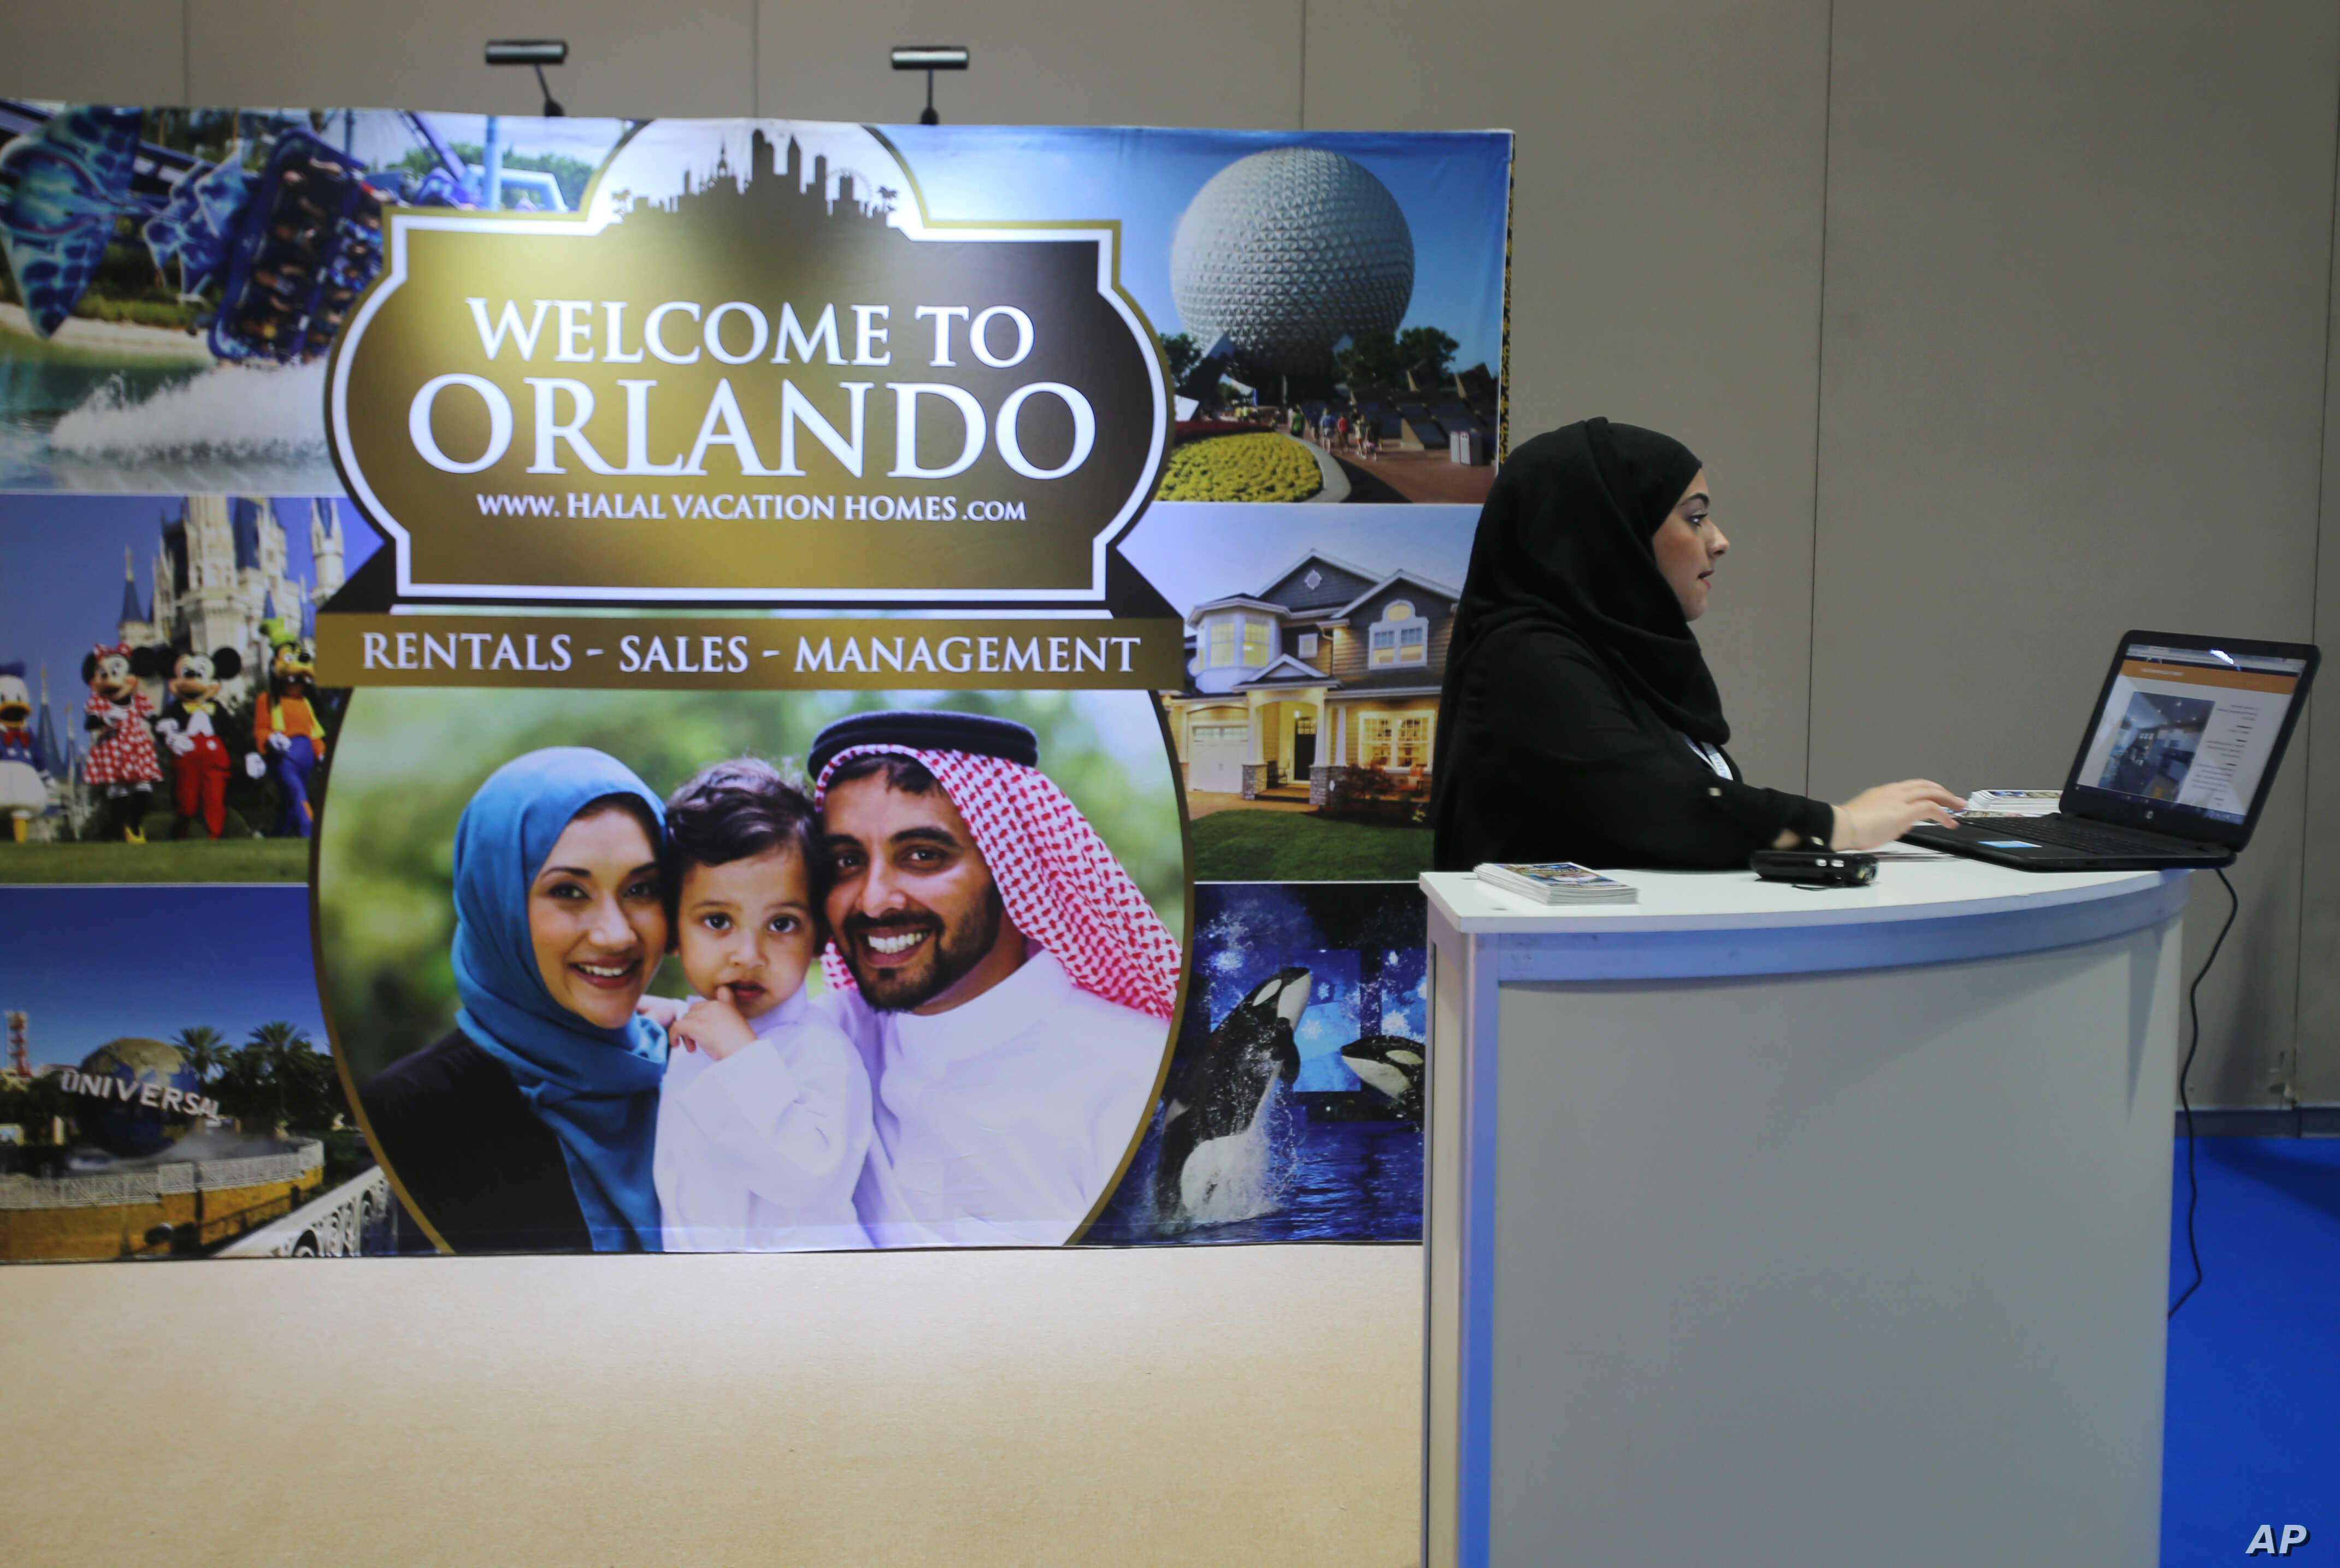 Halal Tourism' Emerges as Businesses Serve Muslim Travelers